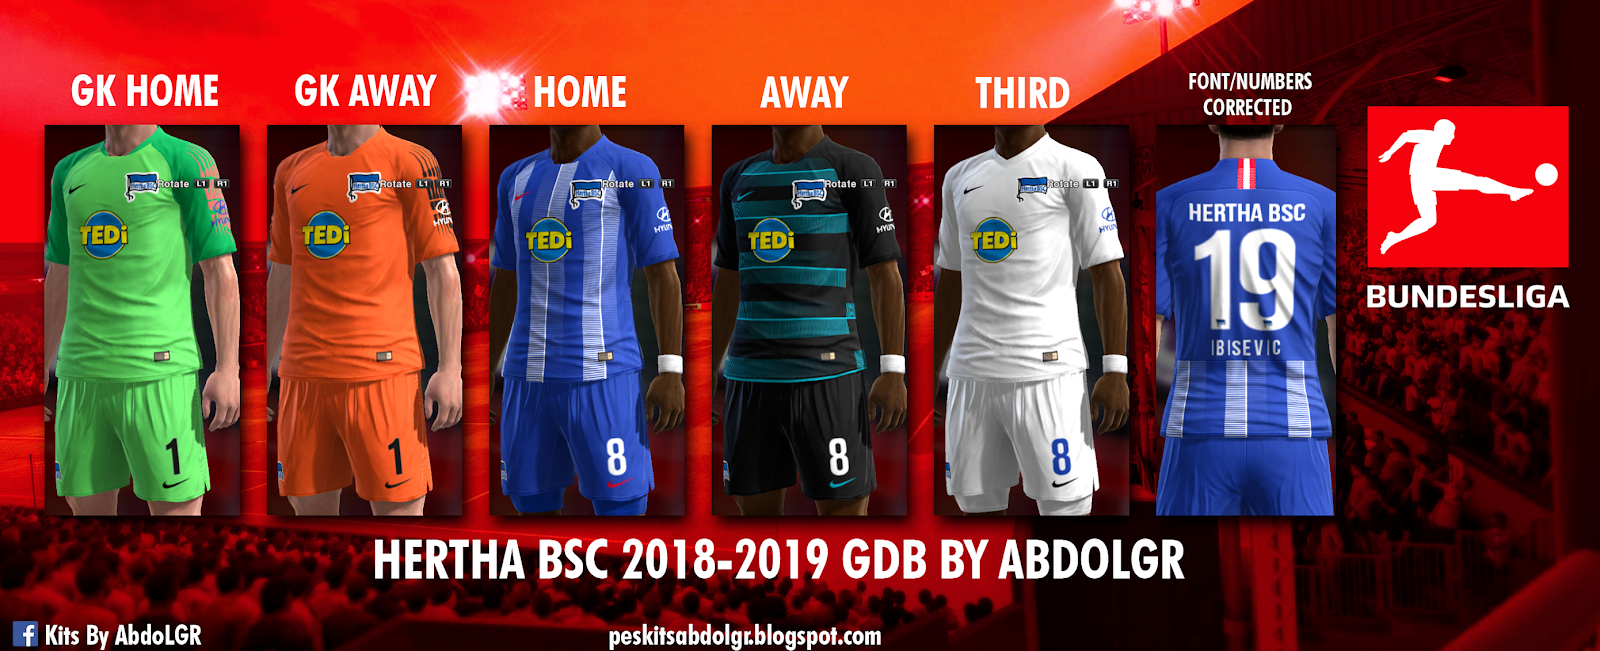 Kits by AbdoLGR - Page 6 Preview%2Bhertha